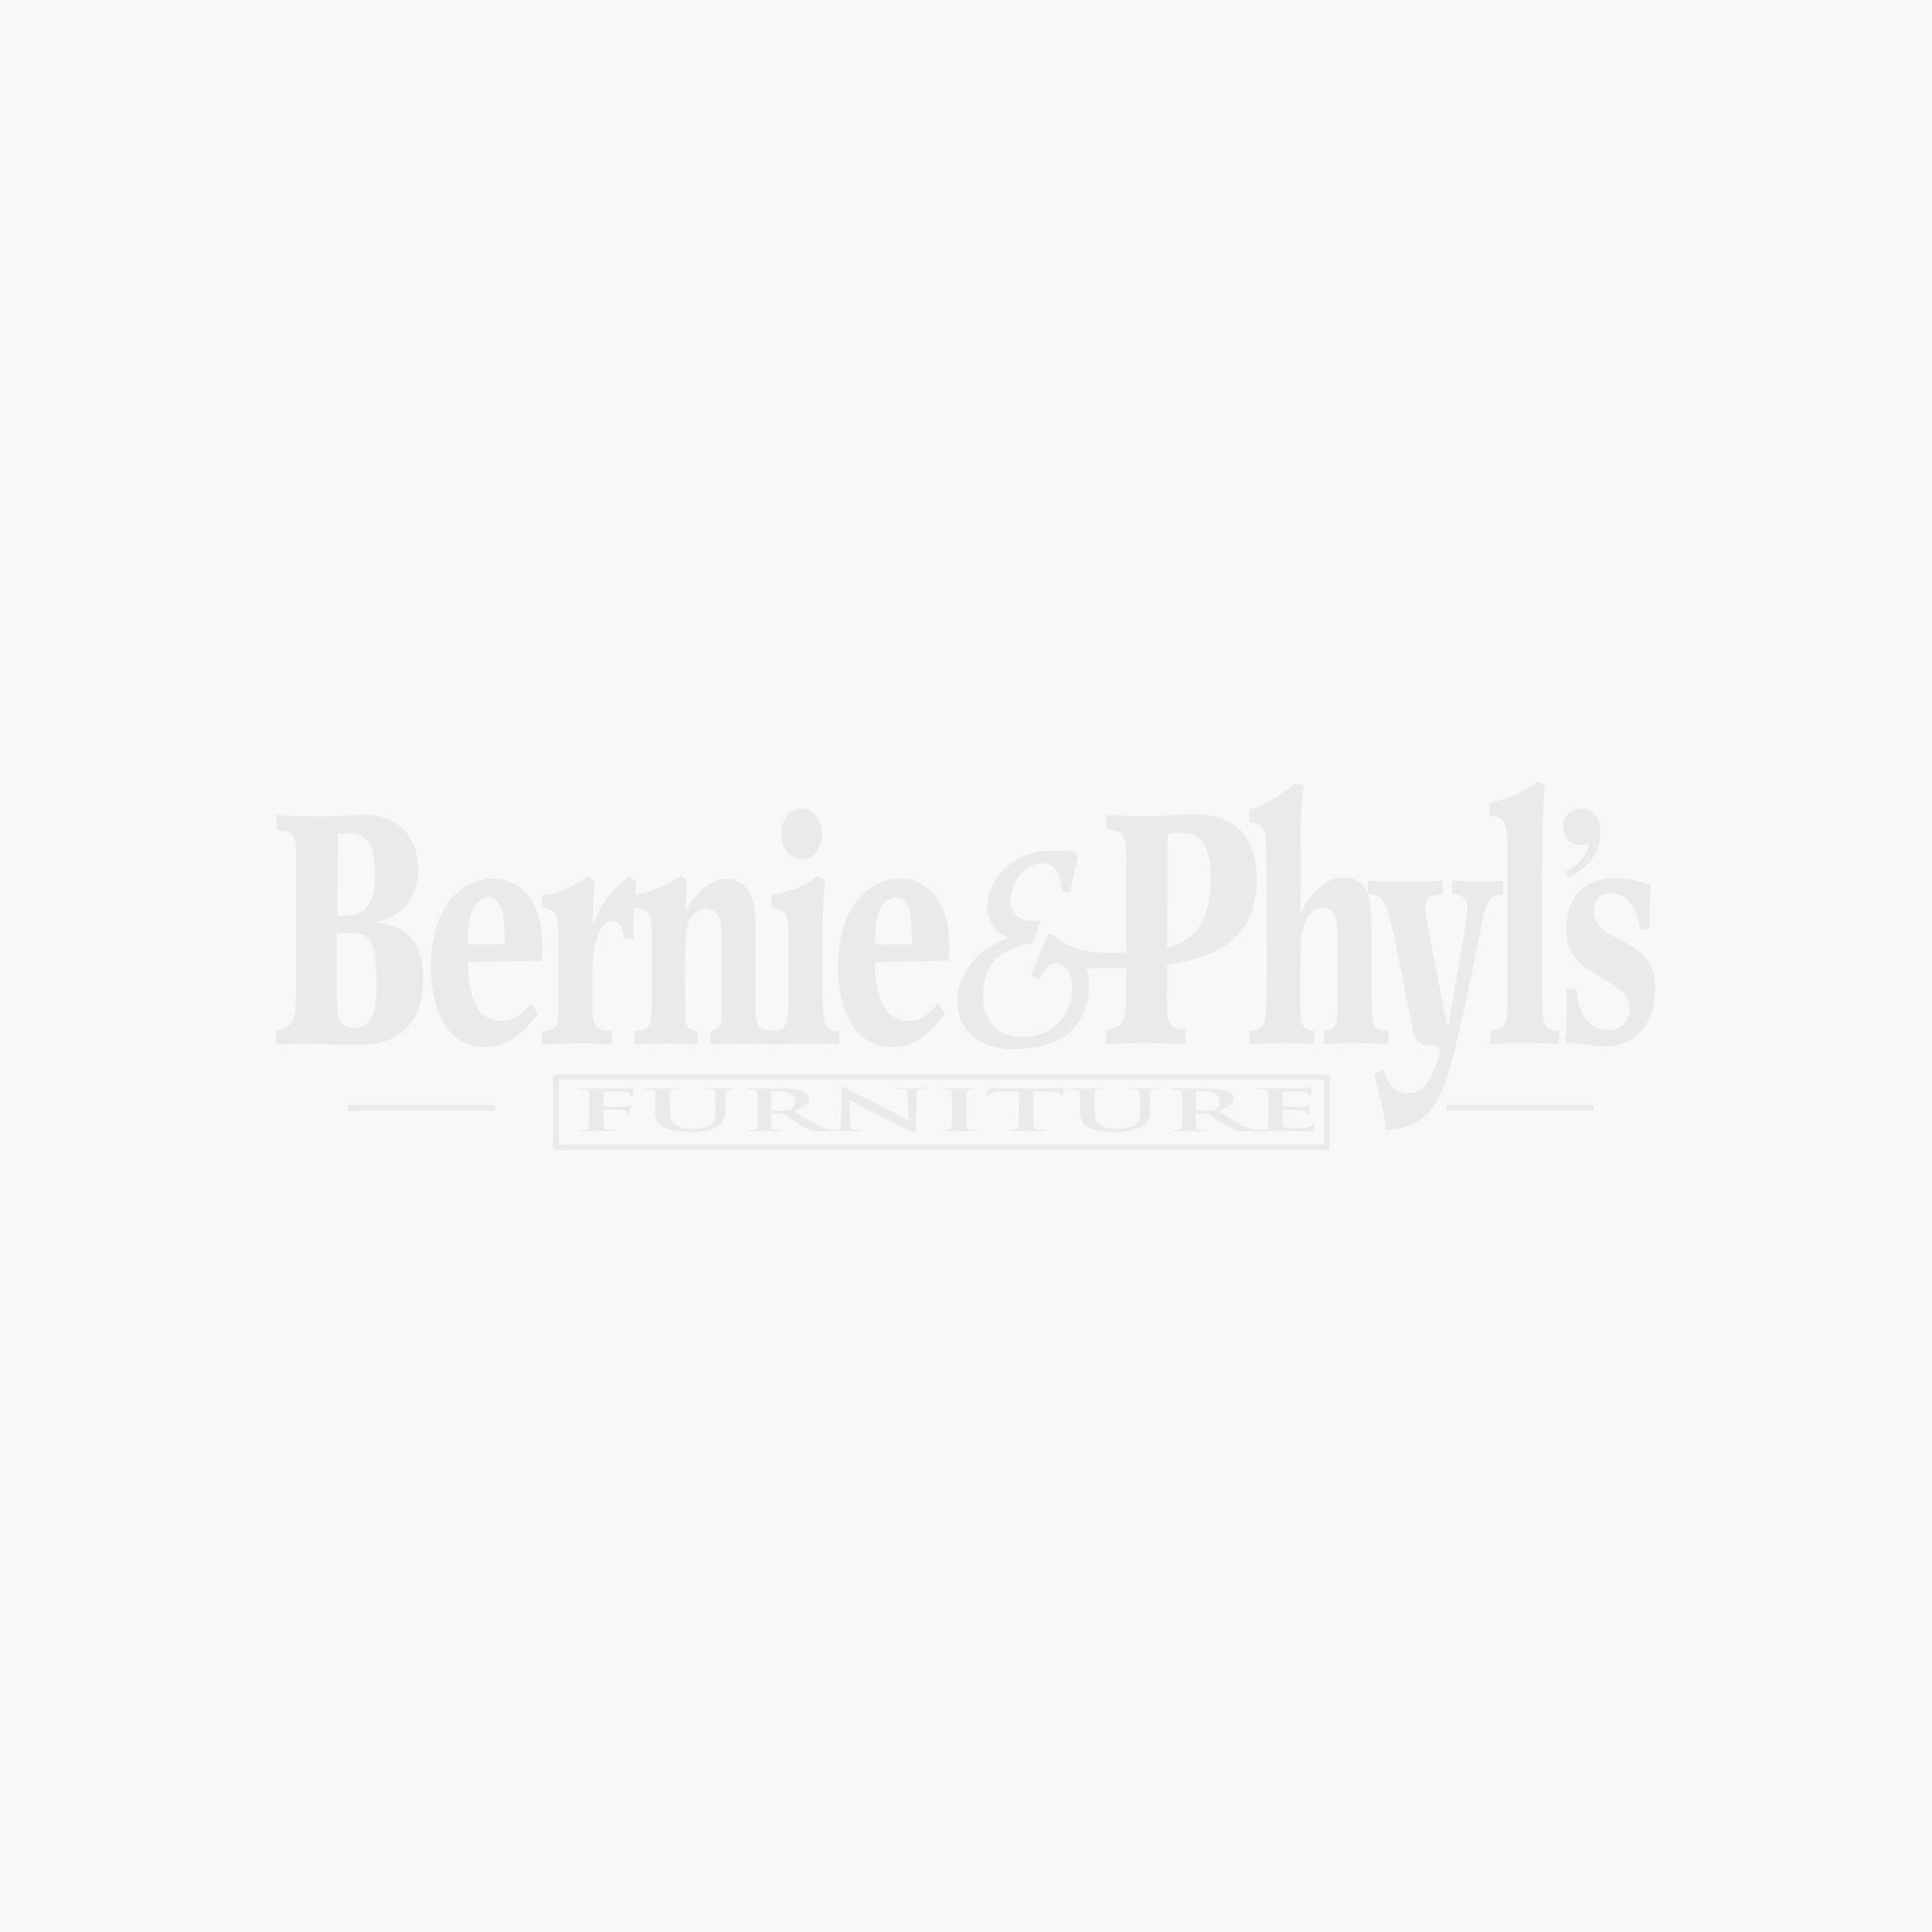 Bench w/ Rattan Baskets - Black - (Set of 1) - BC9318R - by Southern Enterprises